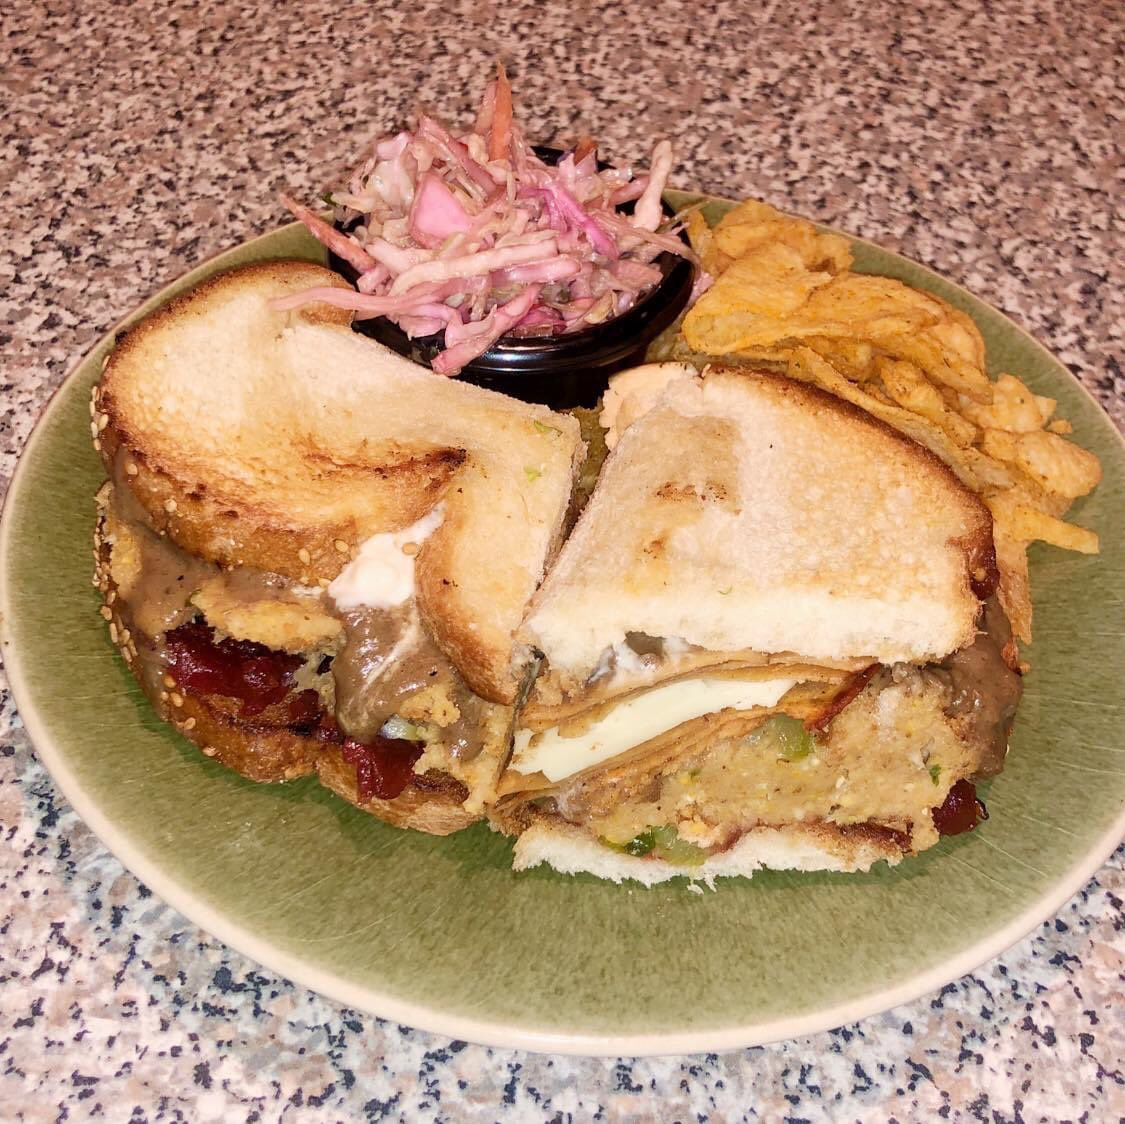 #ThanksgivingLeftovers #Sammiches for #dinner! Hickory smoked #vegan deli meat, homemade mushroom gravy, stuffing, cranberry sauce, @DaiyaFoods mozzarella slice & vegan mayo. Paired with @Lays sweet #jalapeño kettle-cooked potato chips & Asian cabbage slaw. #QuarantineCookingClub https://t.co/4TR8kIBFHX